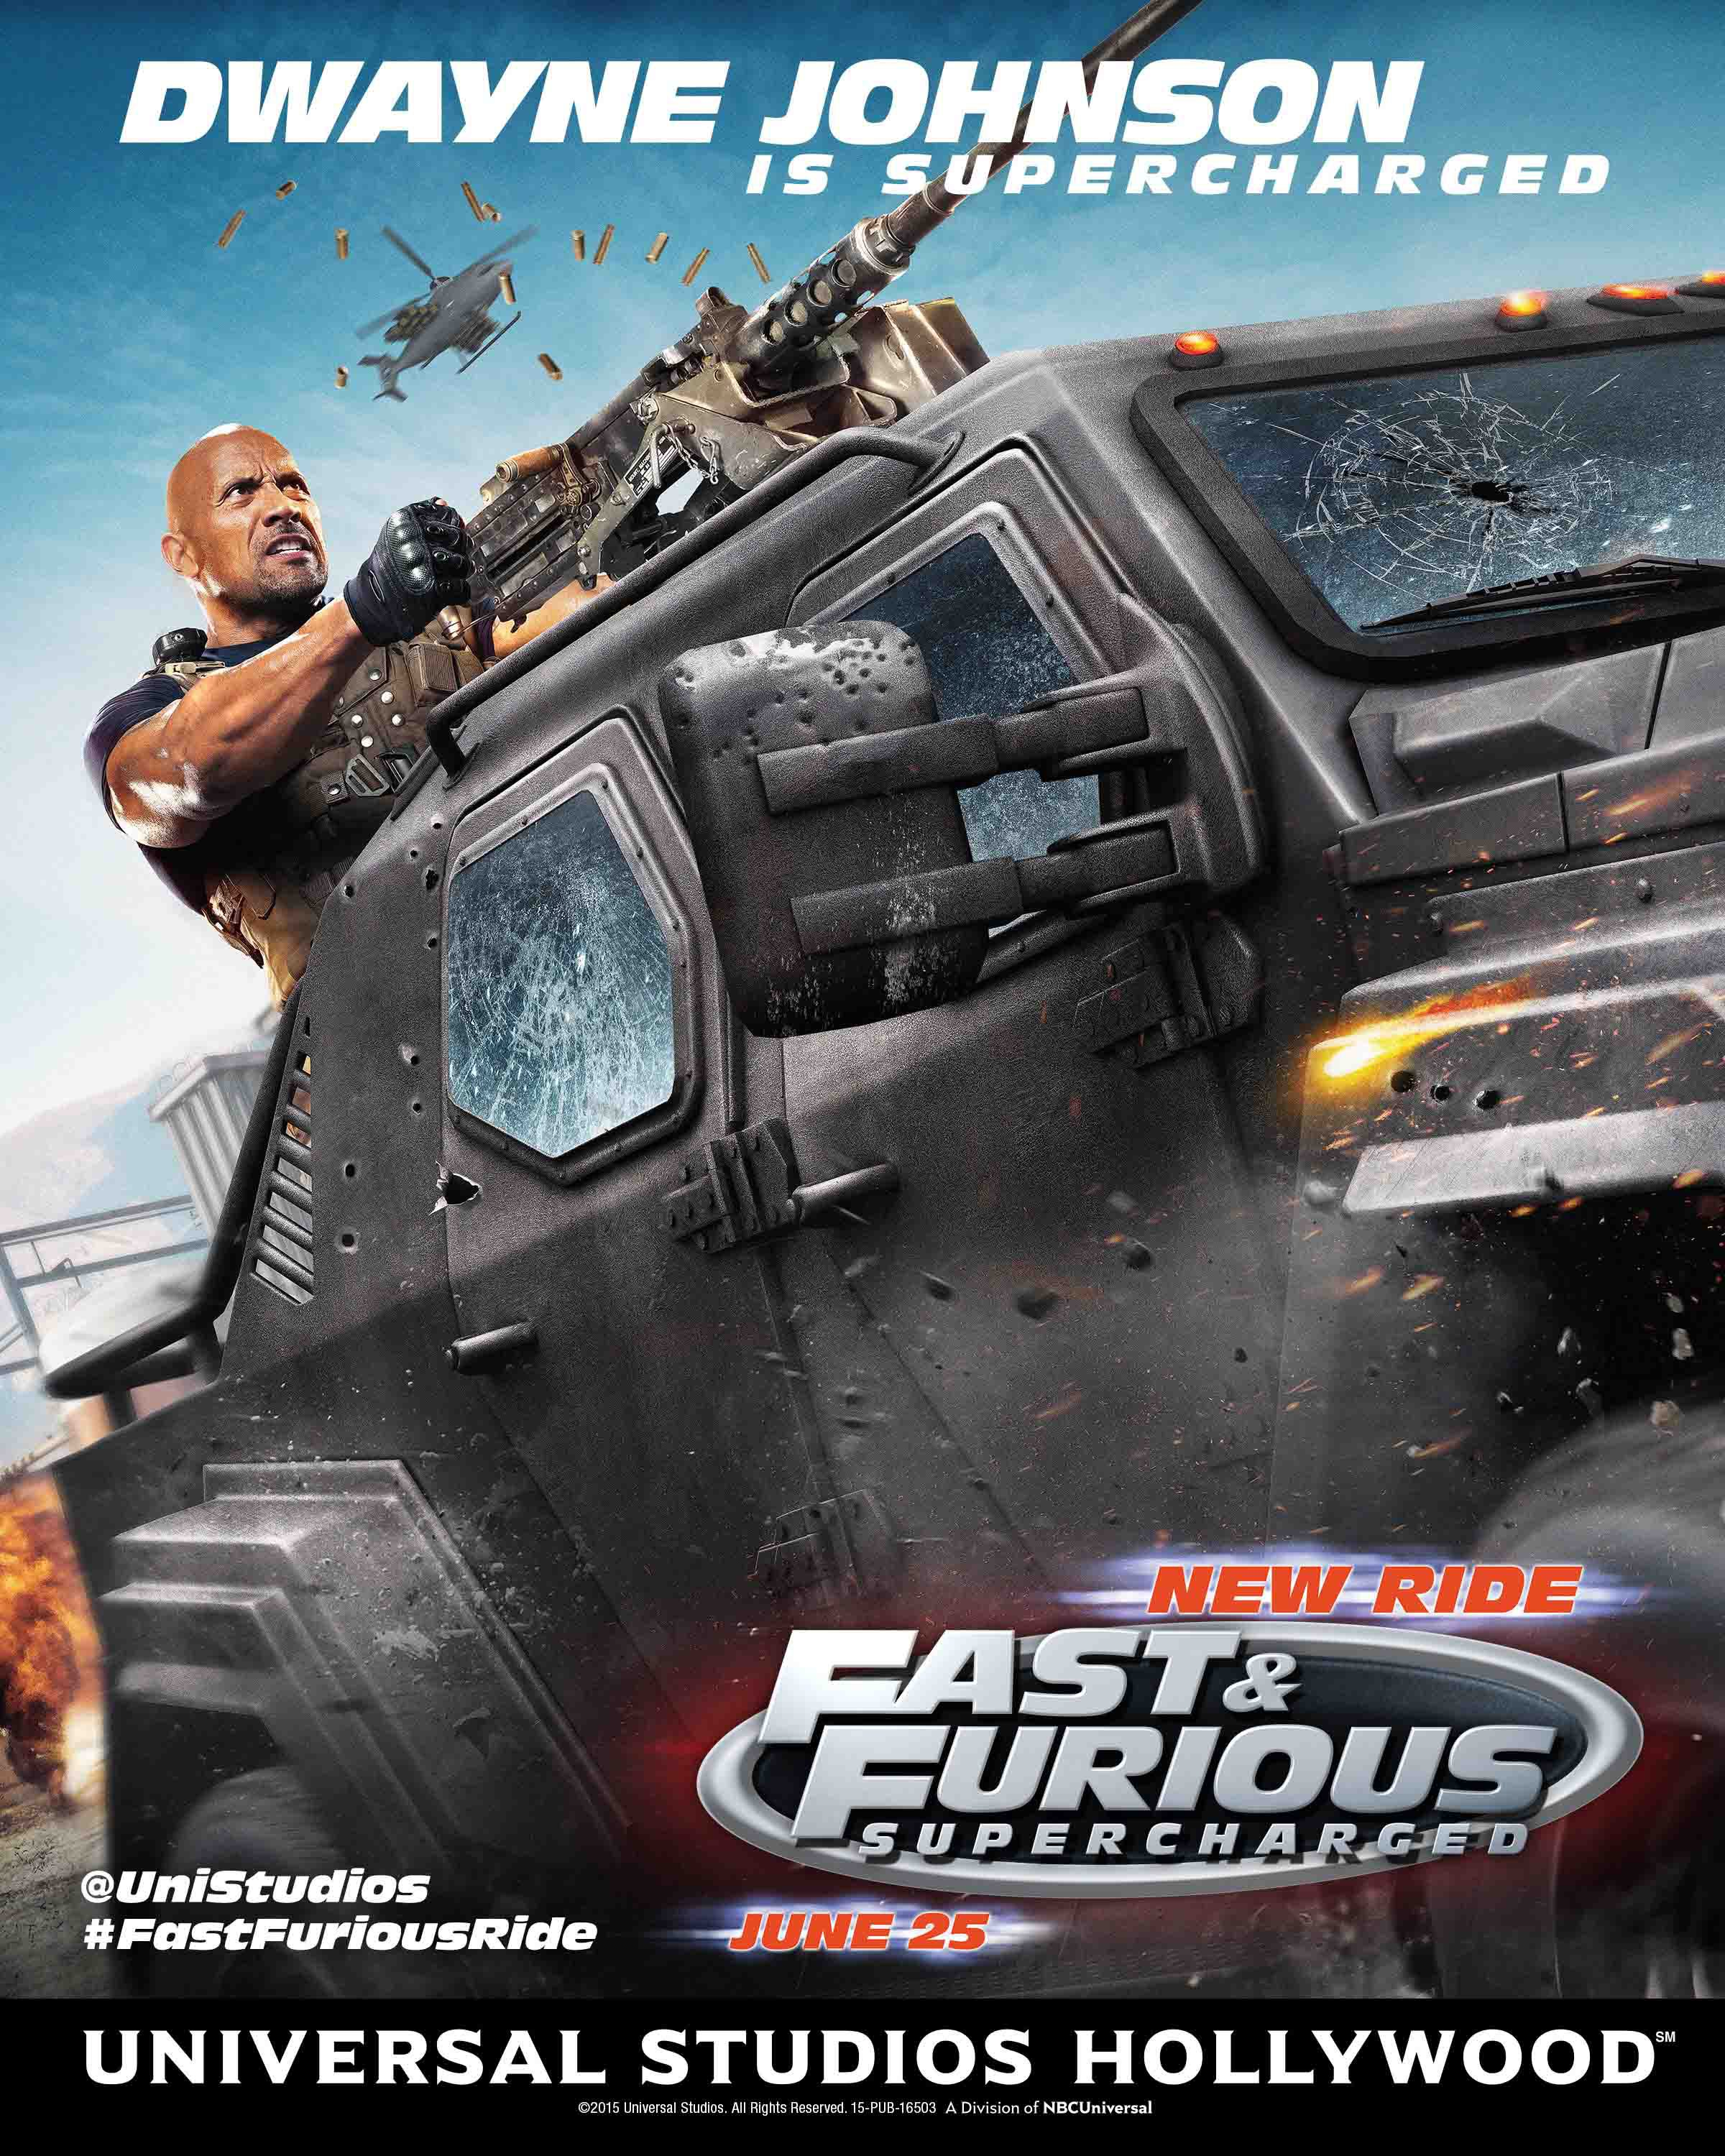 Fast and Furious: Supercharged Poster - Dwayne Johnson